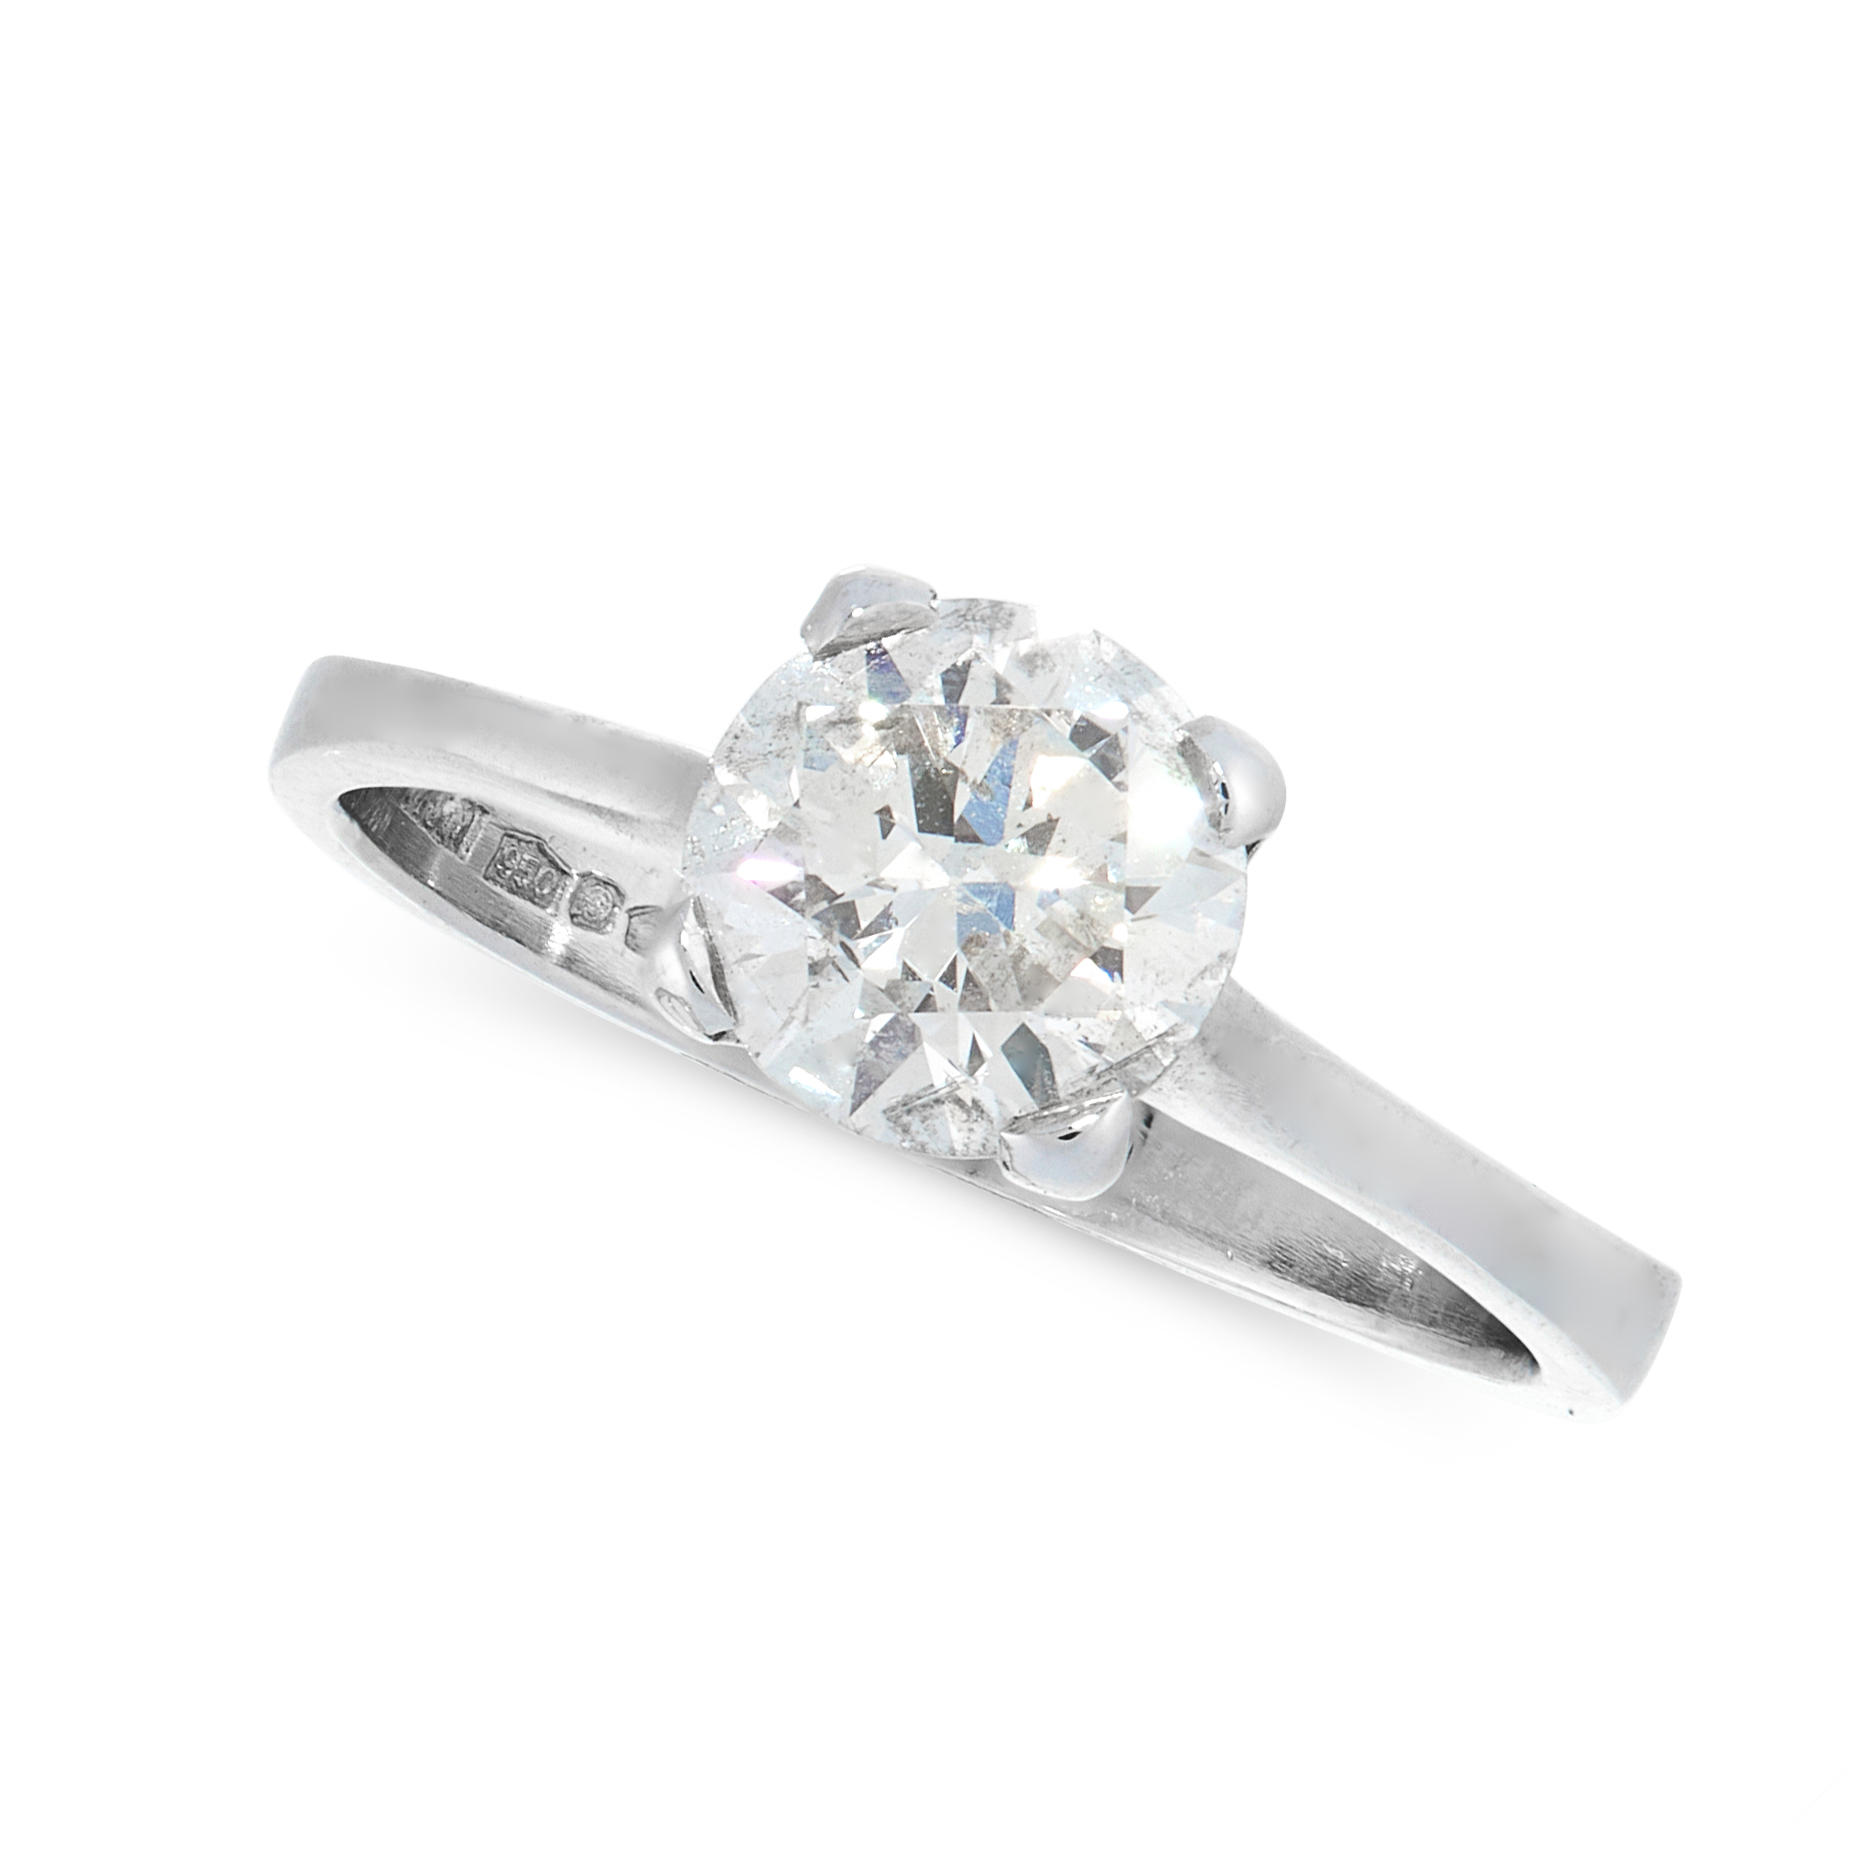 A SOLITAIRE DIAMOND DRESS RING in platinum, set with a round cut diamond of 1.28 carats, full